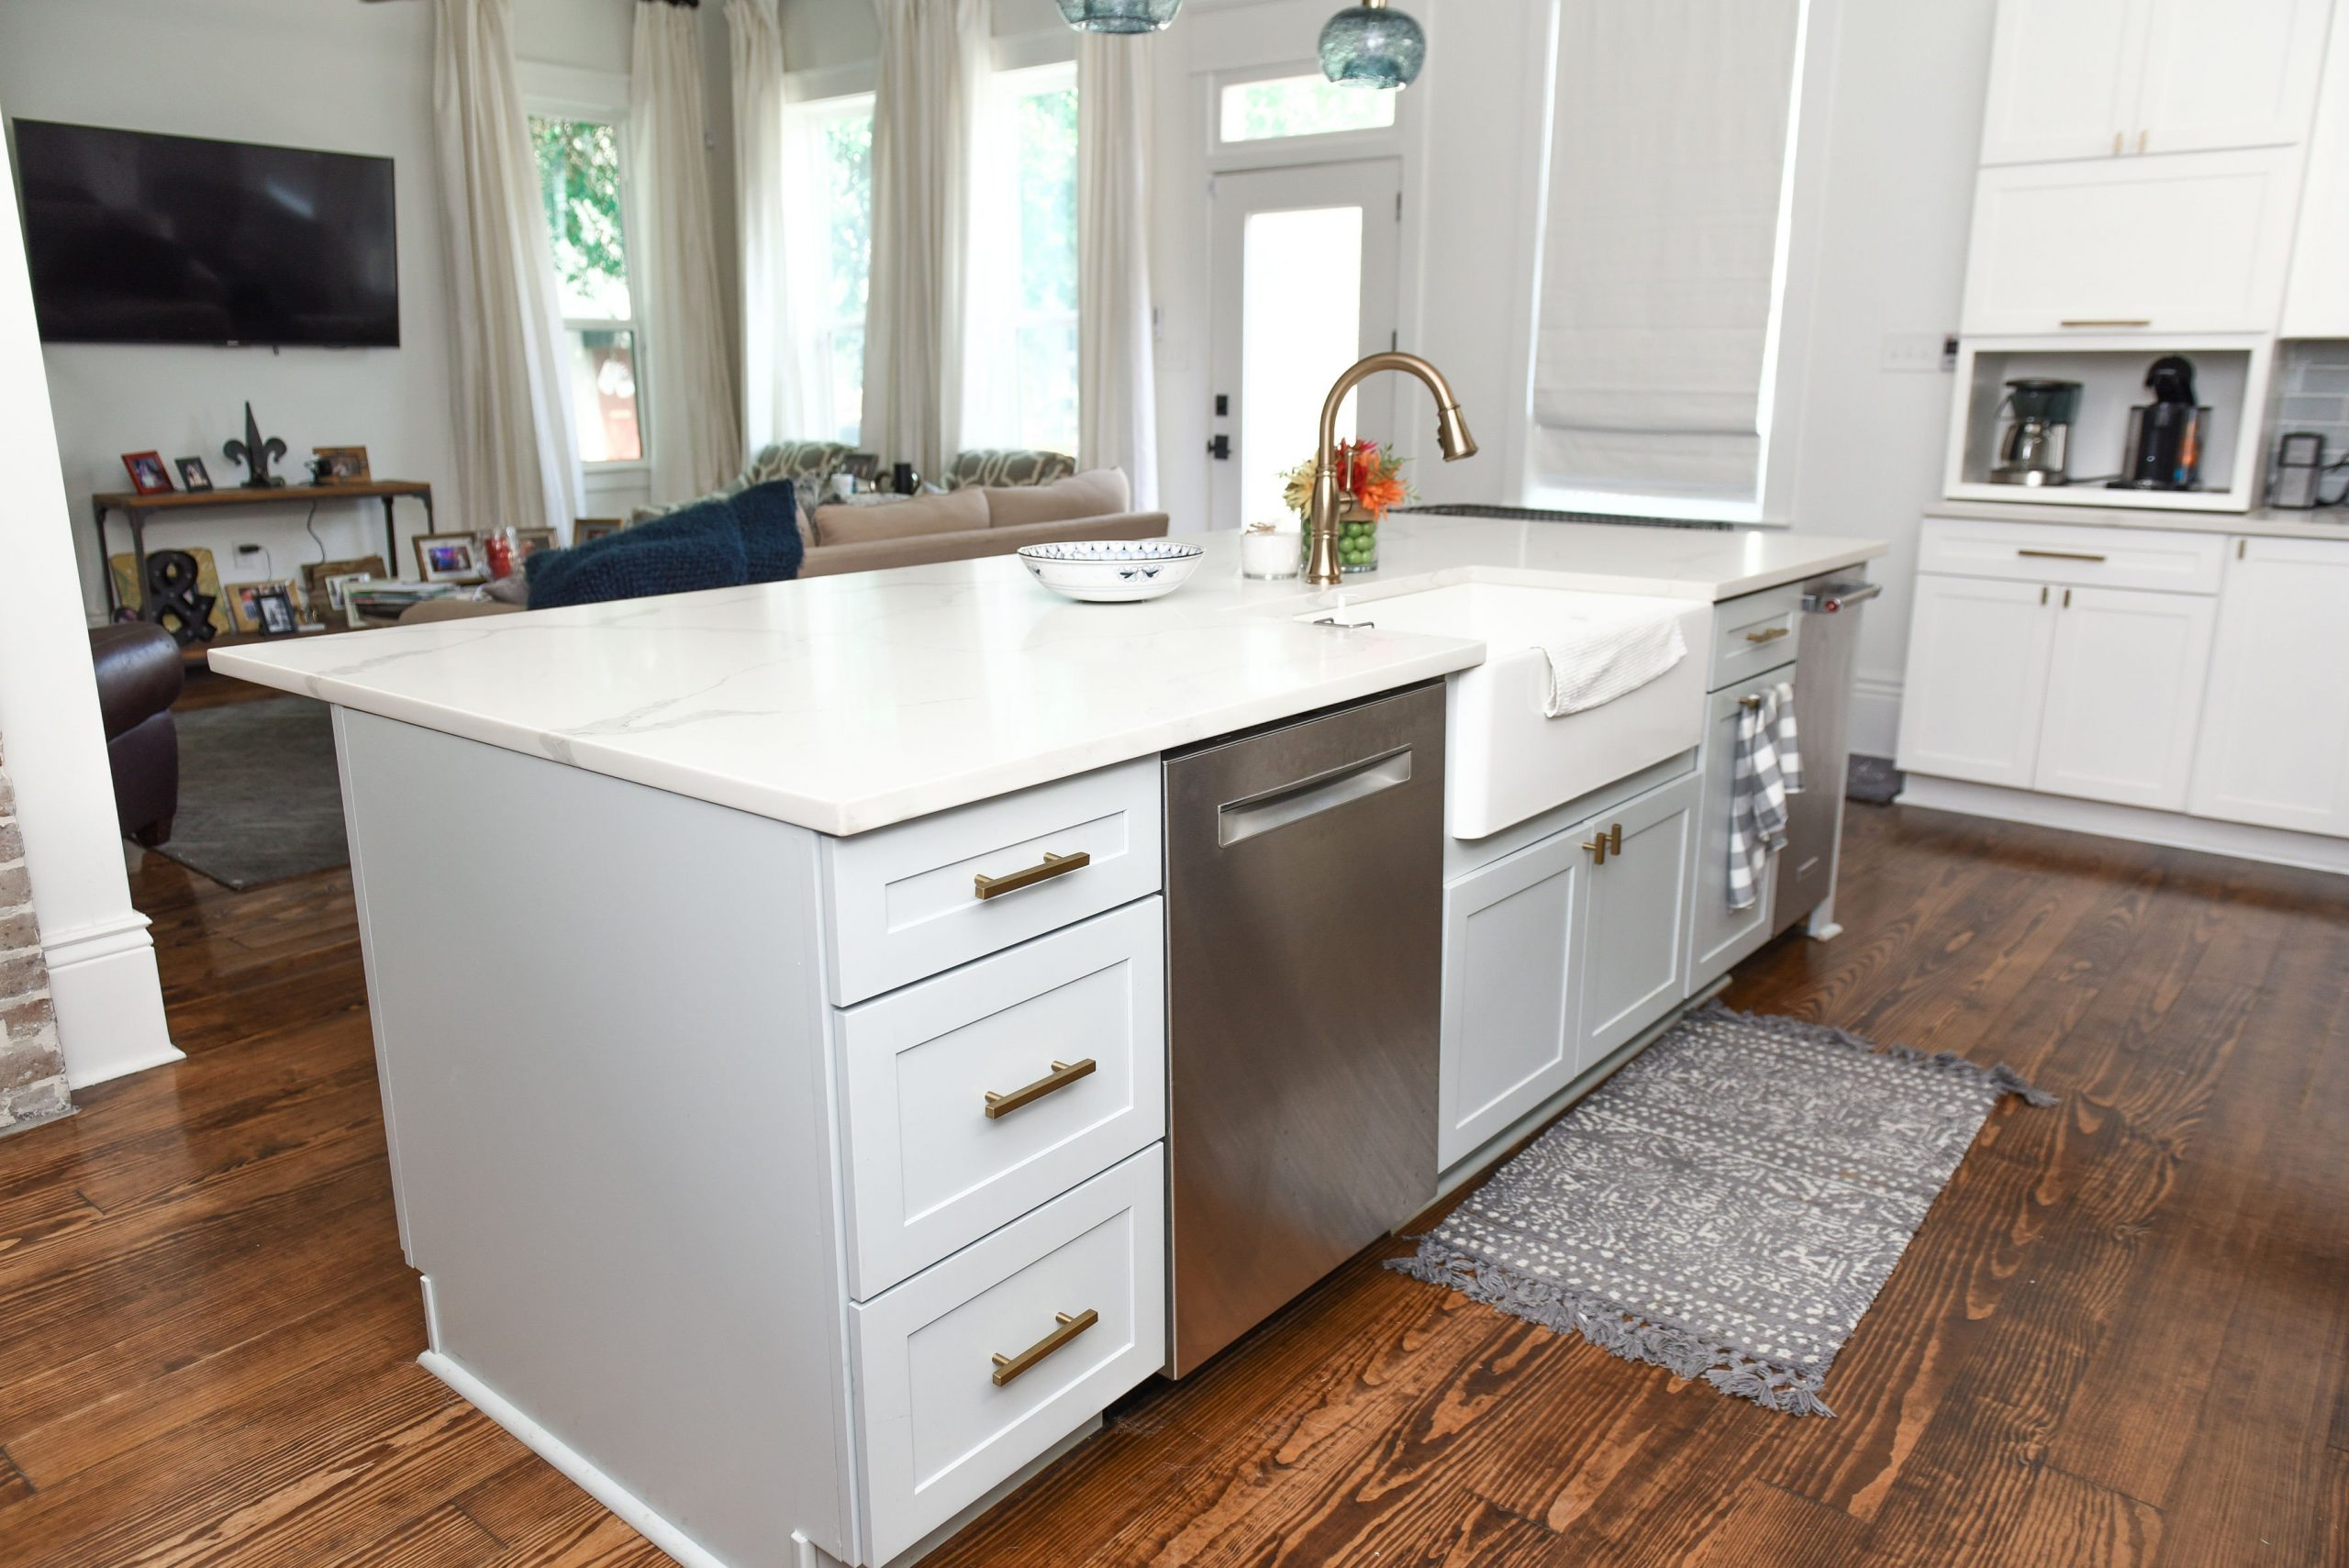 How To Build A Kitchen Island With Sink And Dishwasher?